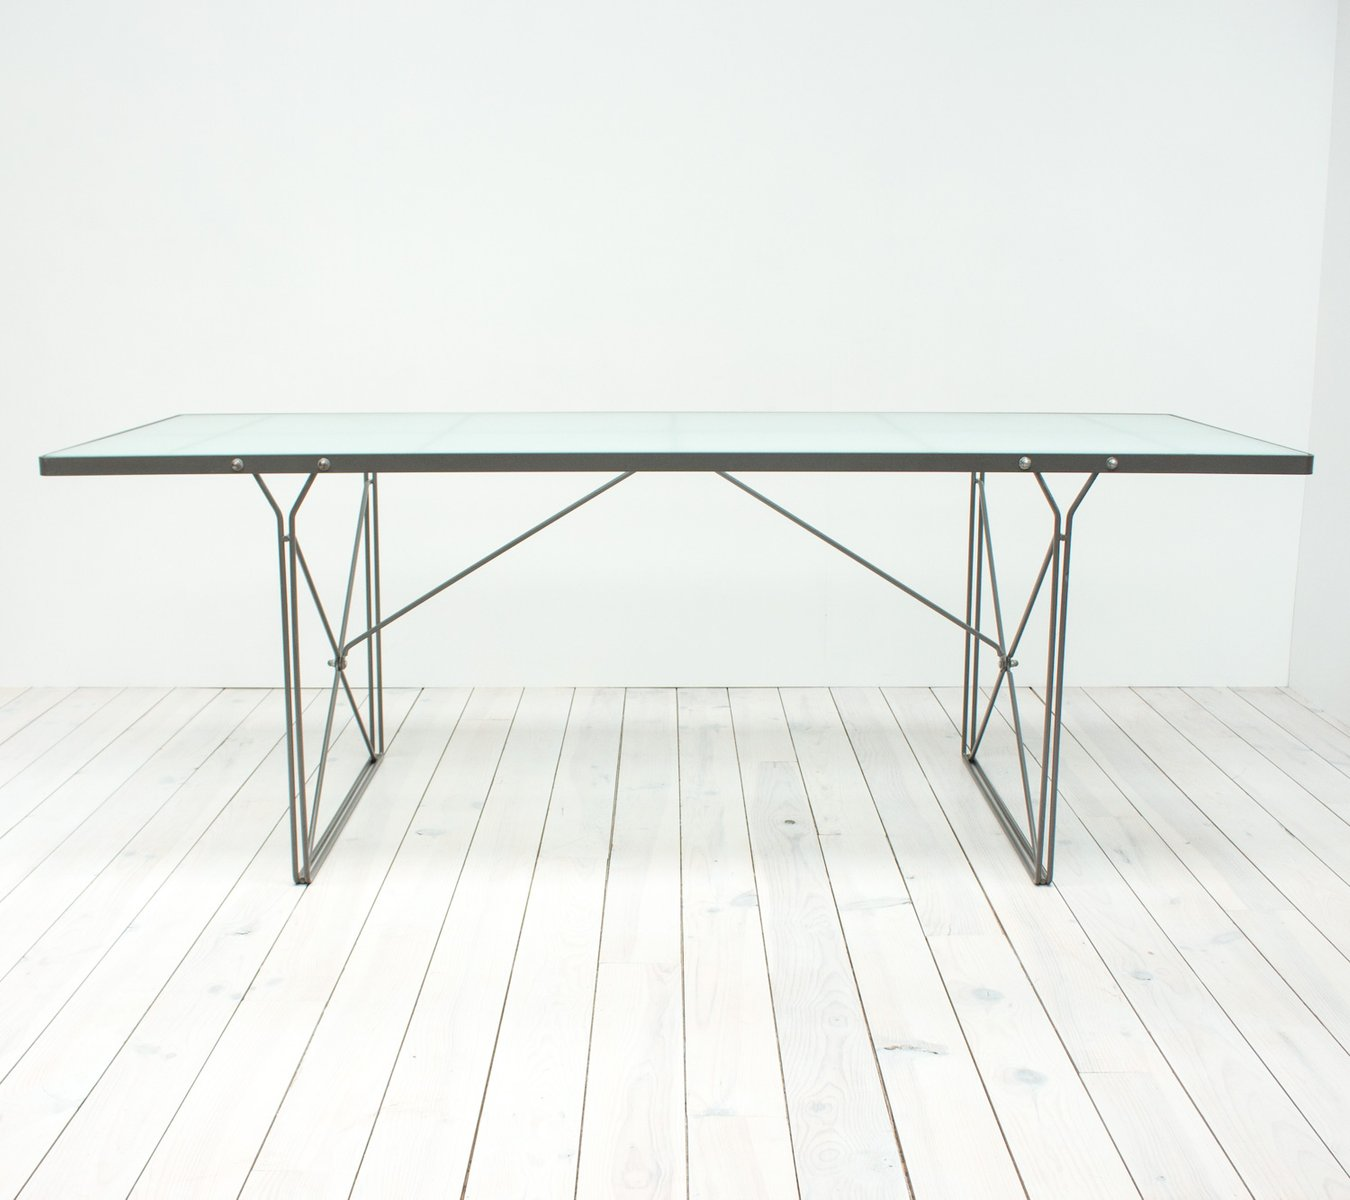 Moment Gl Dining Table By Niels Gammelgaard For Ikea 1987